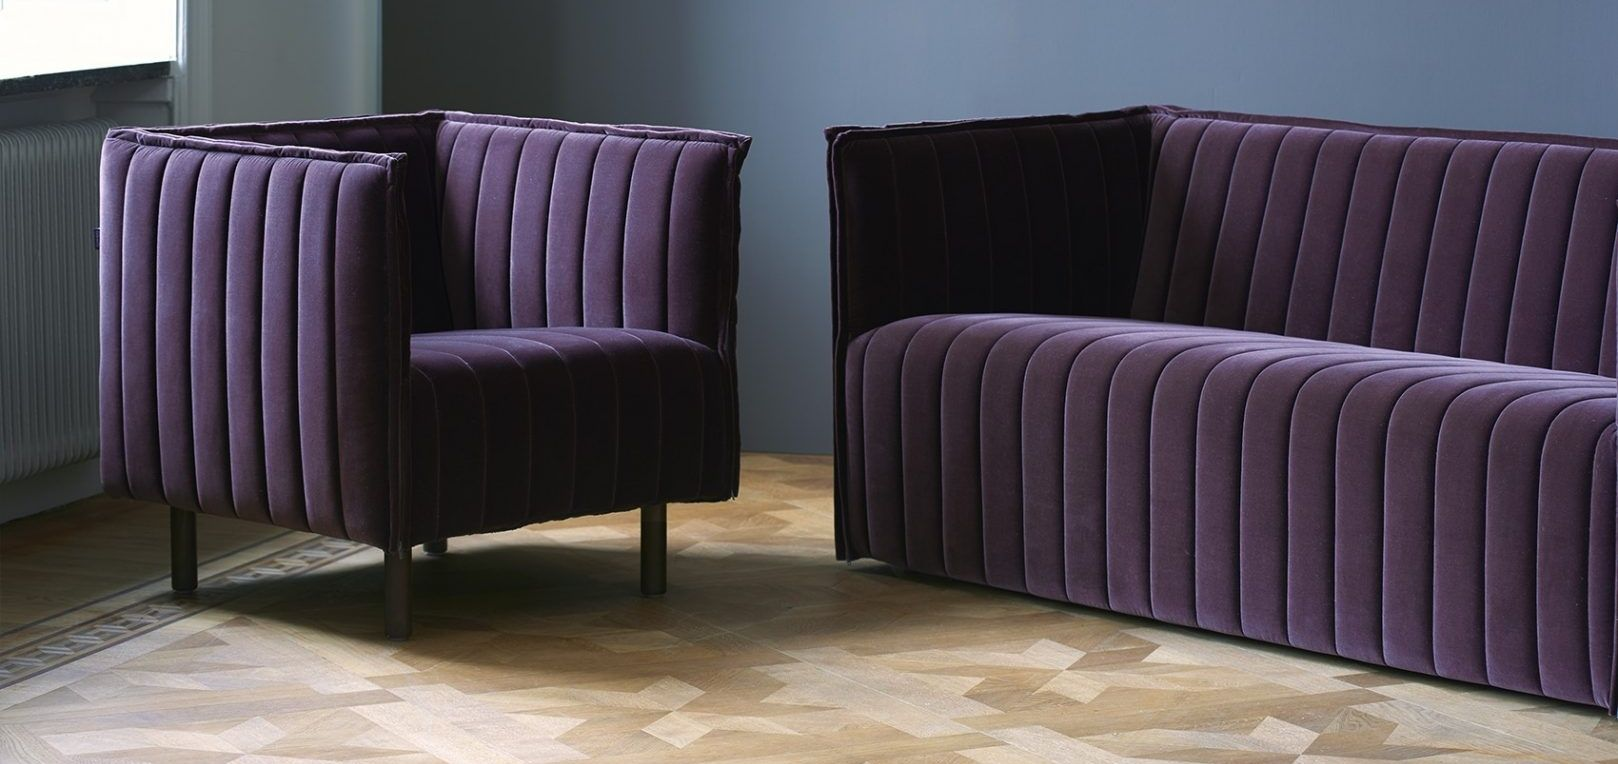 Furniture Trends Lines Furniture Woven Chair Sofa